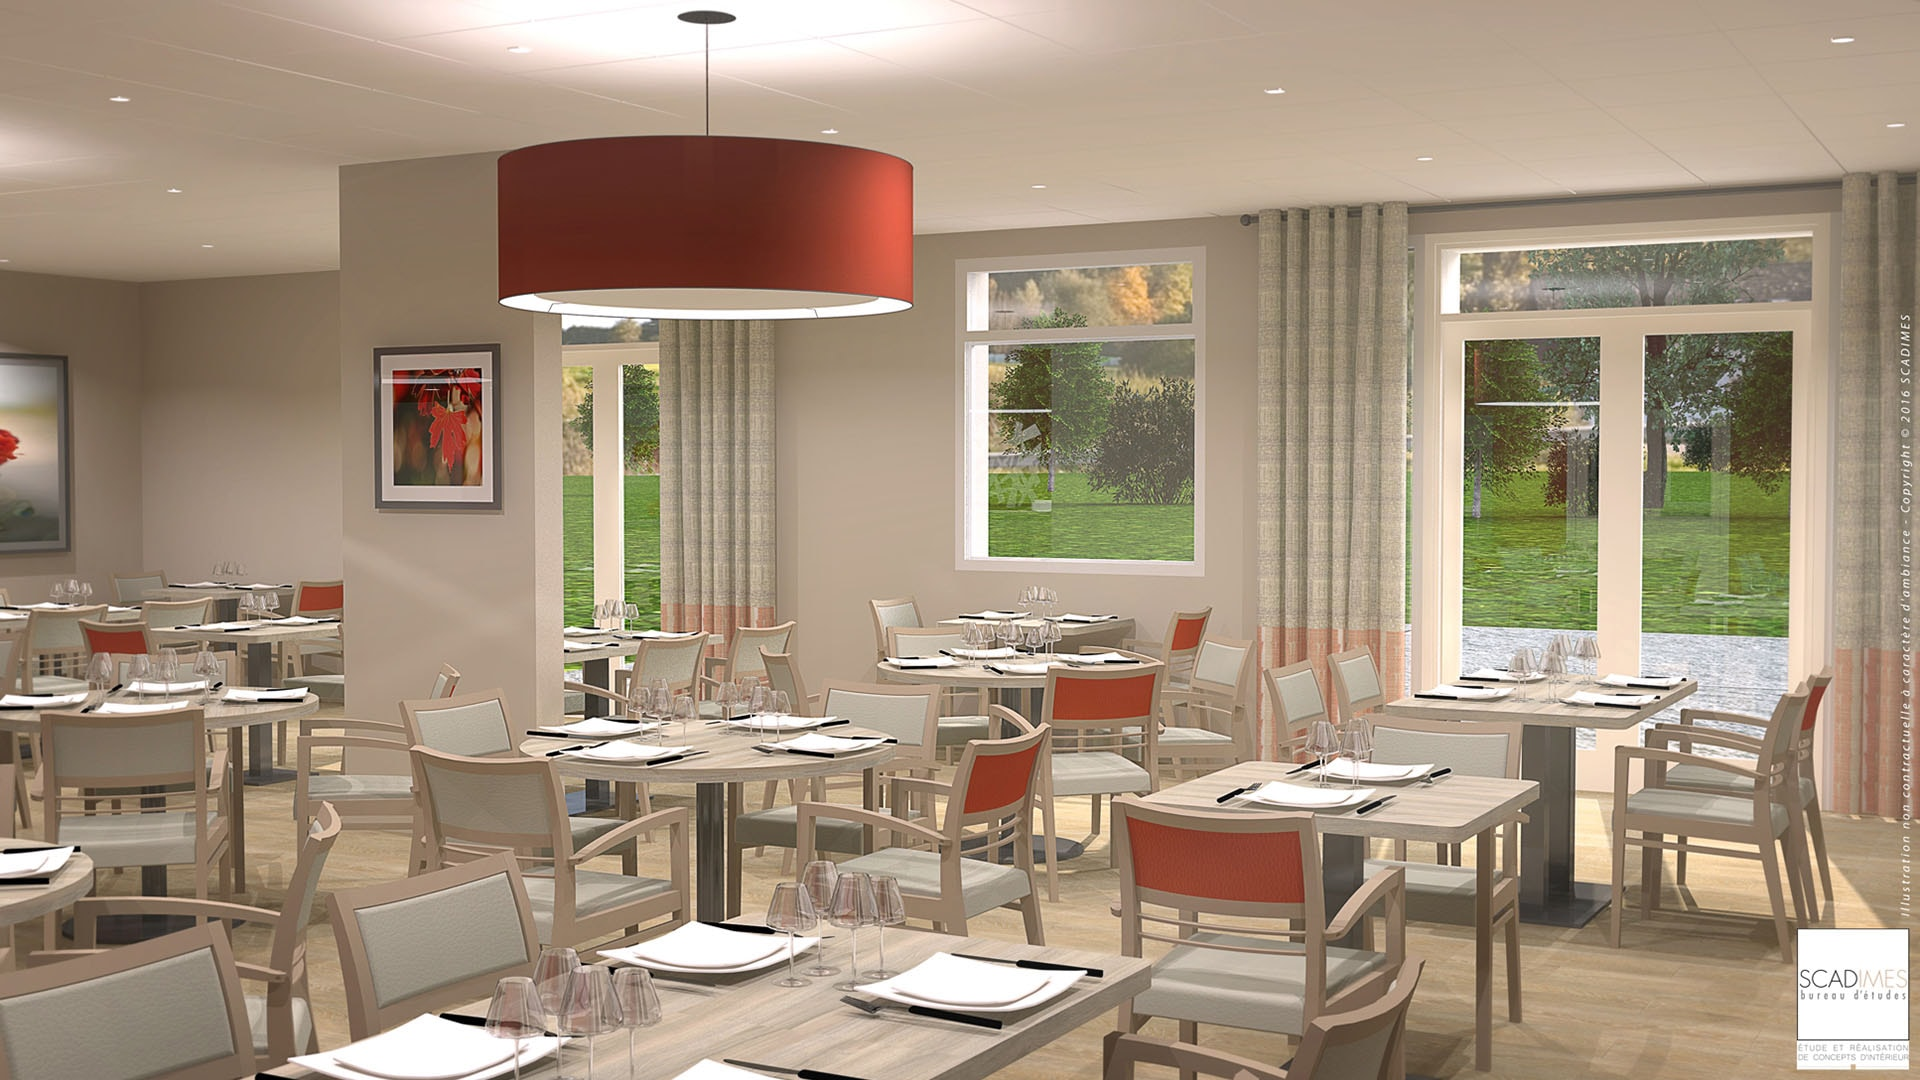 Residence De France Programme Immobilier Neuf A Beuvry